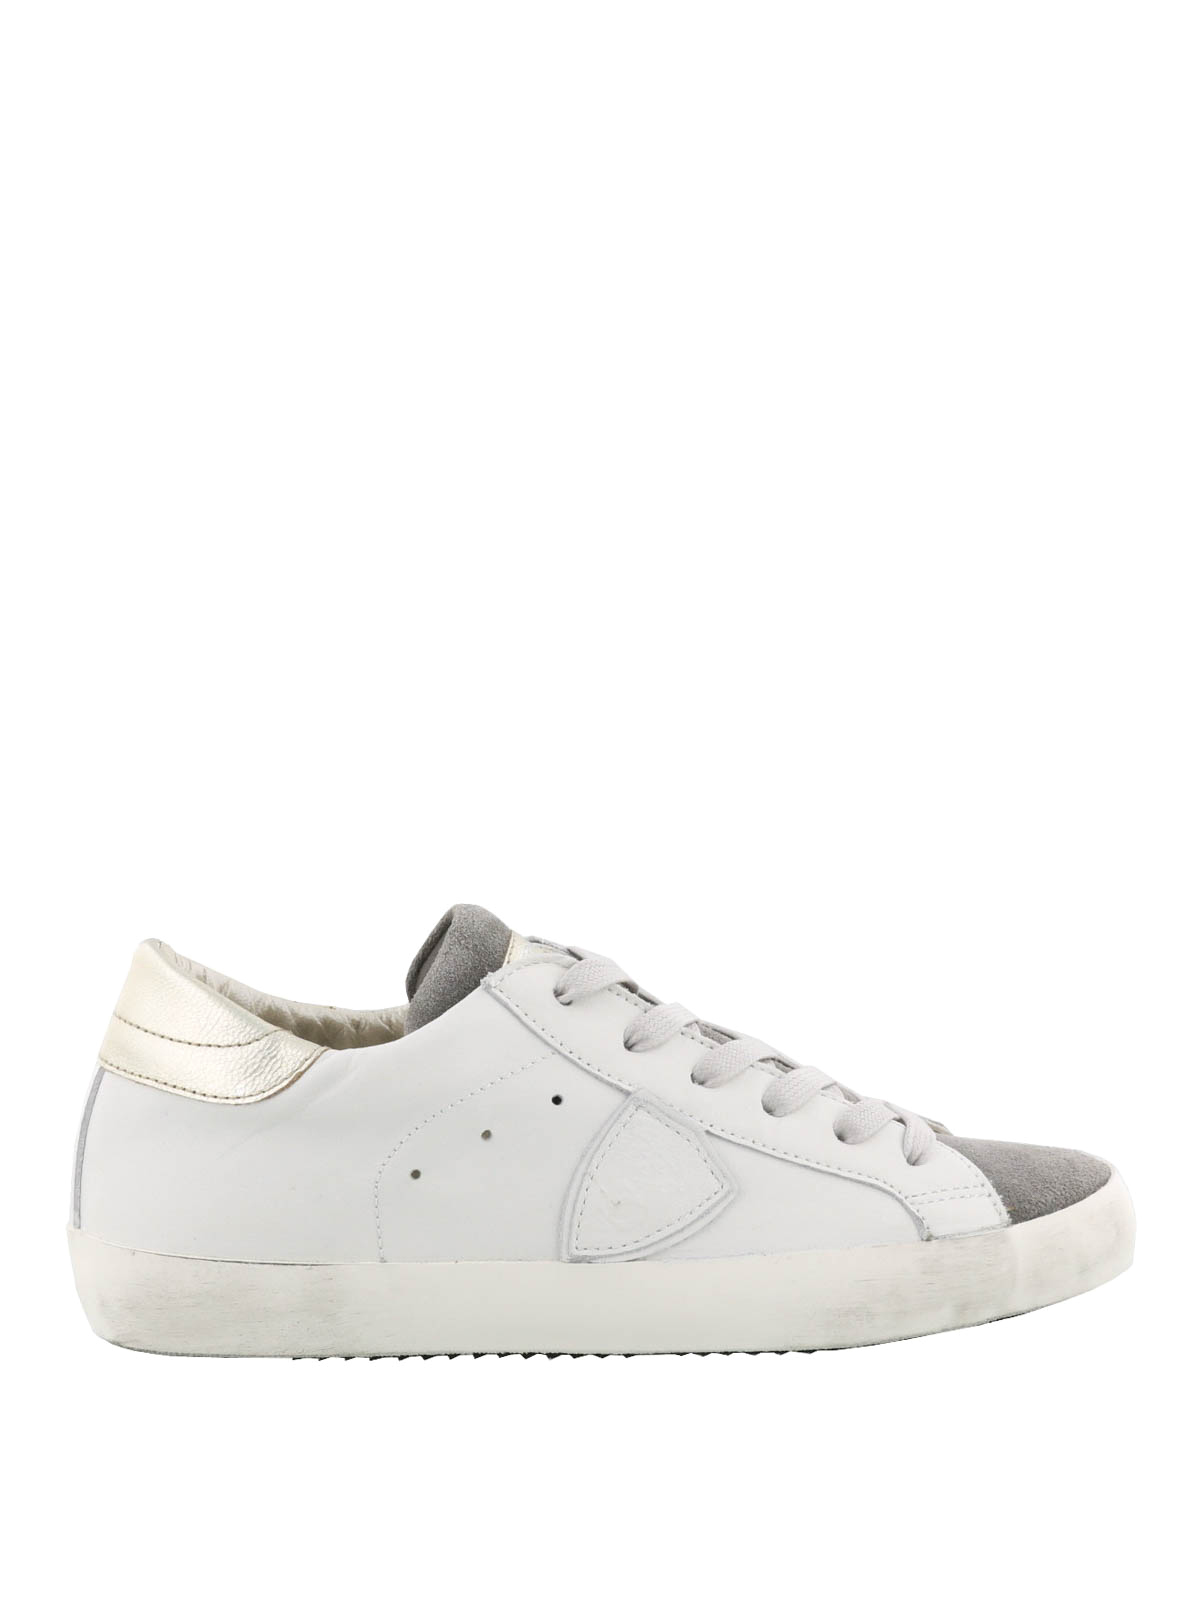 paris white and grey sneakers by philippe model trainers ikrix. Black Bedroom Furniture Sets. Home Design Ideas